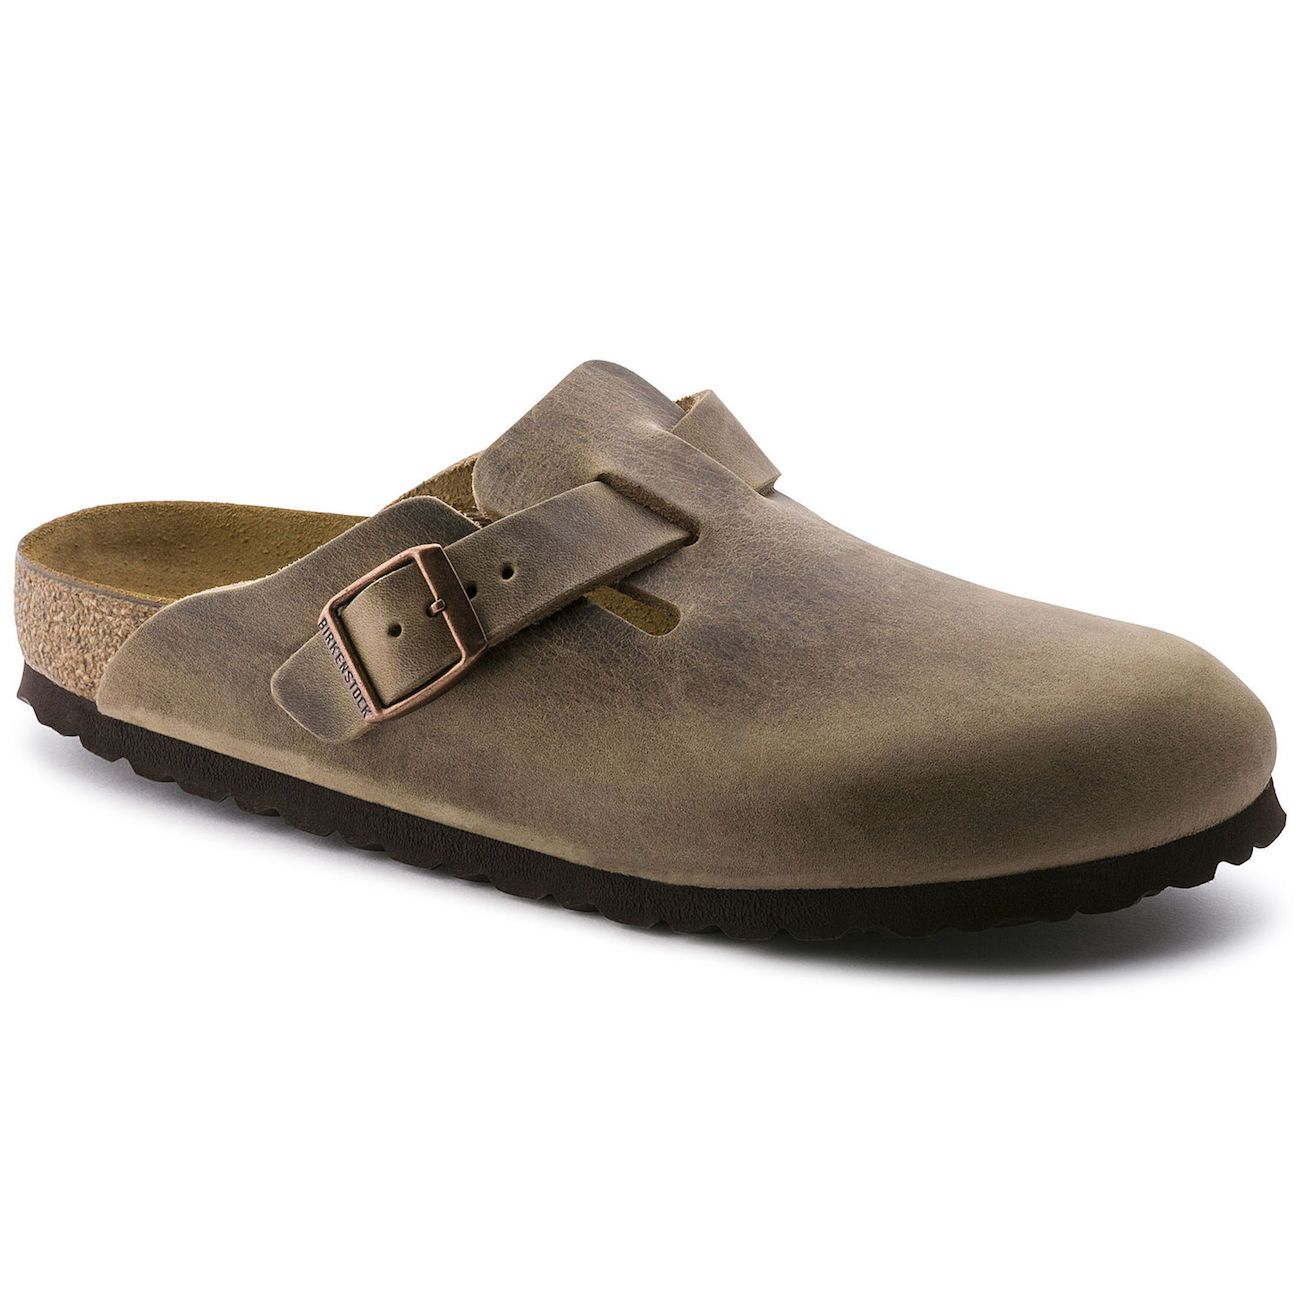 Birkenstock, Boston, Regular Fit, Natural Leather, Tobacco Clogs Birkenstock Classic Tobacco Brown 44